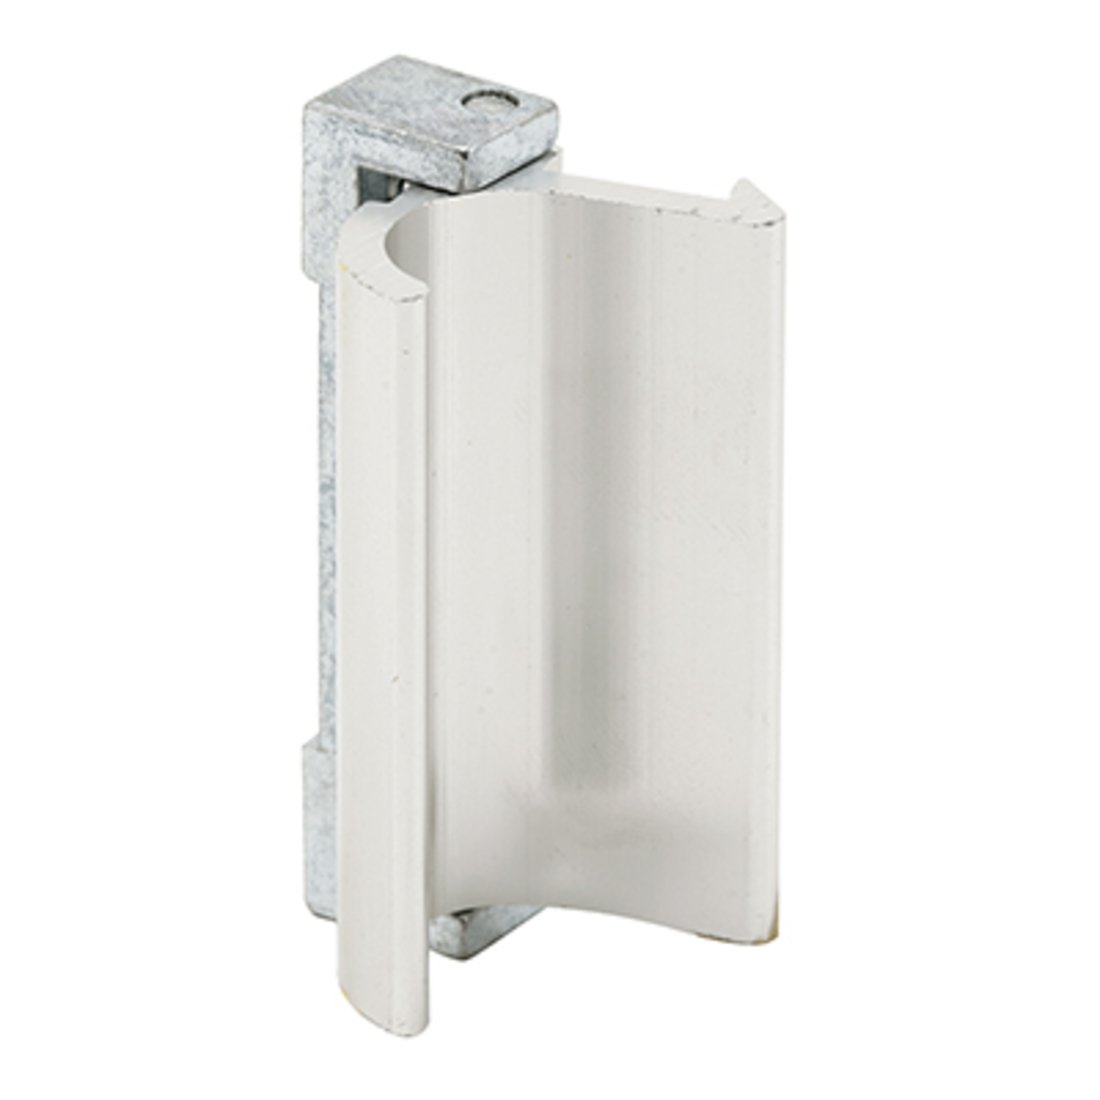 C.R. LAURENCE F2572 CRL Aluminum Sliding Window Pull and Latch for Keller Industries Windows